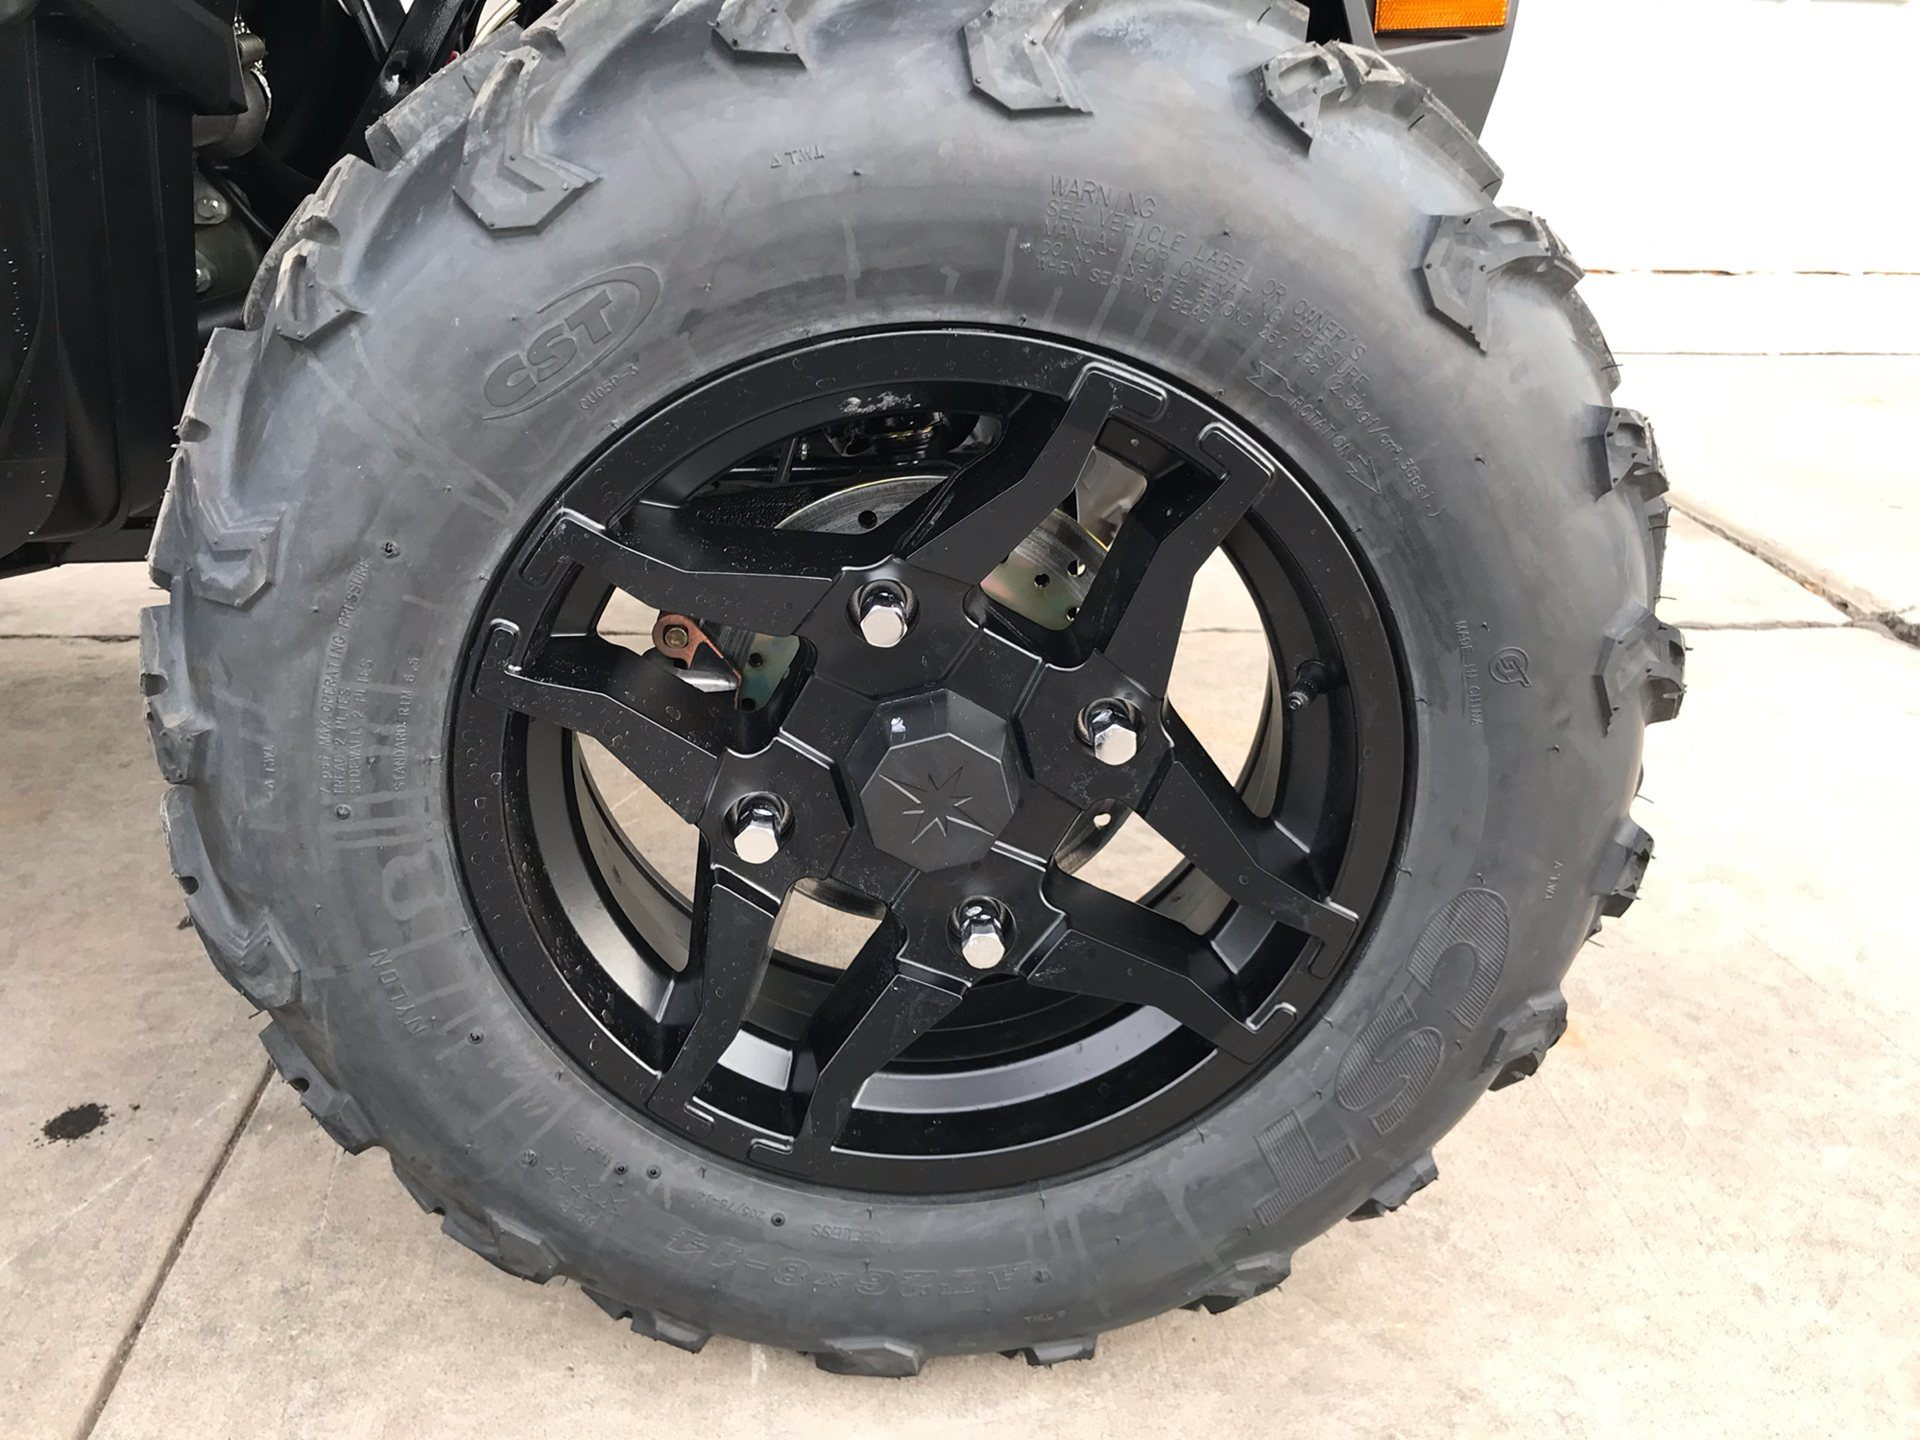 2019 Polaris Sportsman 570 SP in Alamosa, Colorado - Photo 8